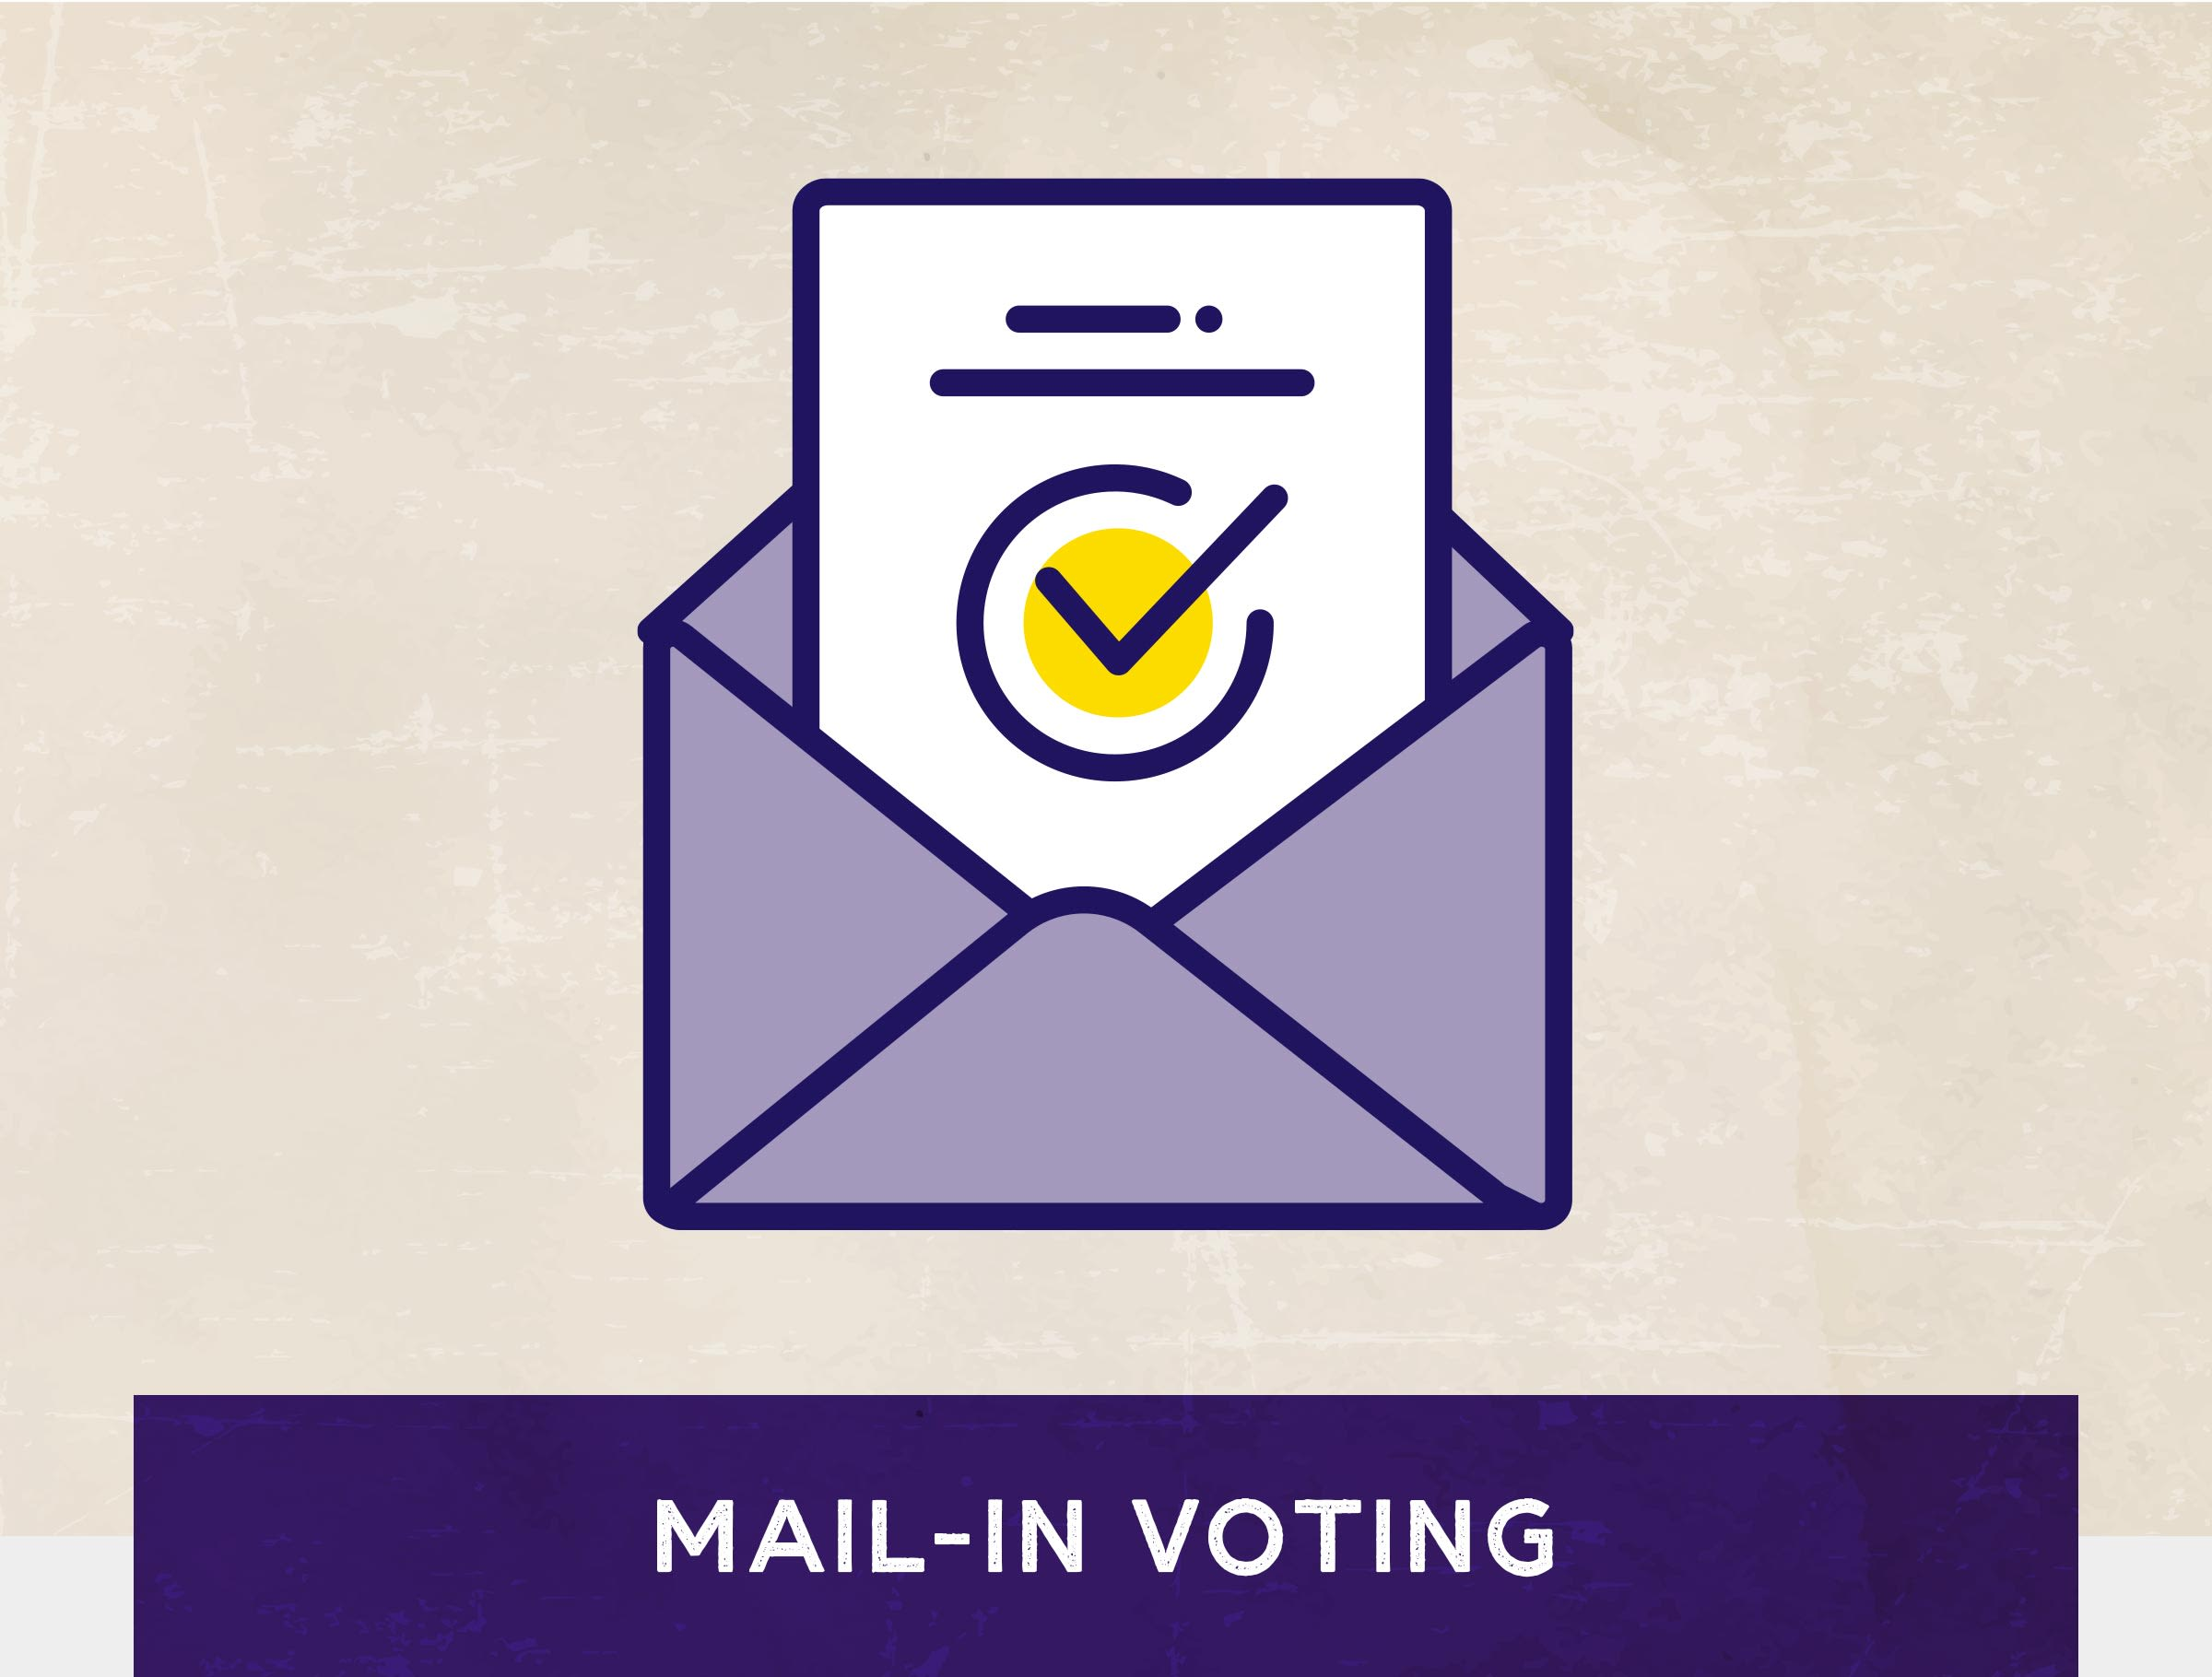 Learn More About Mail-In Voting